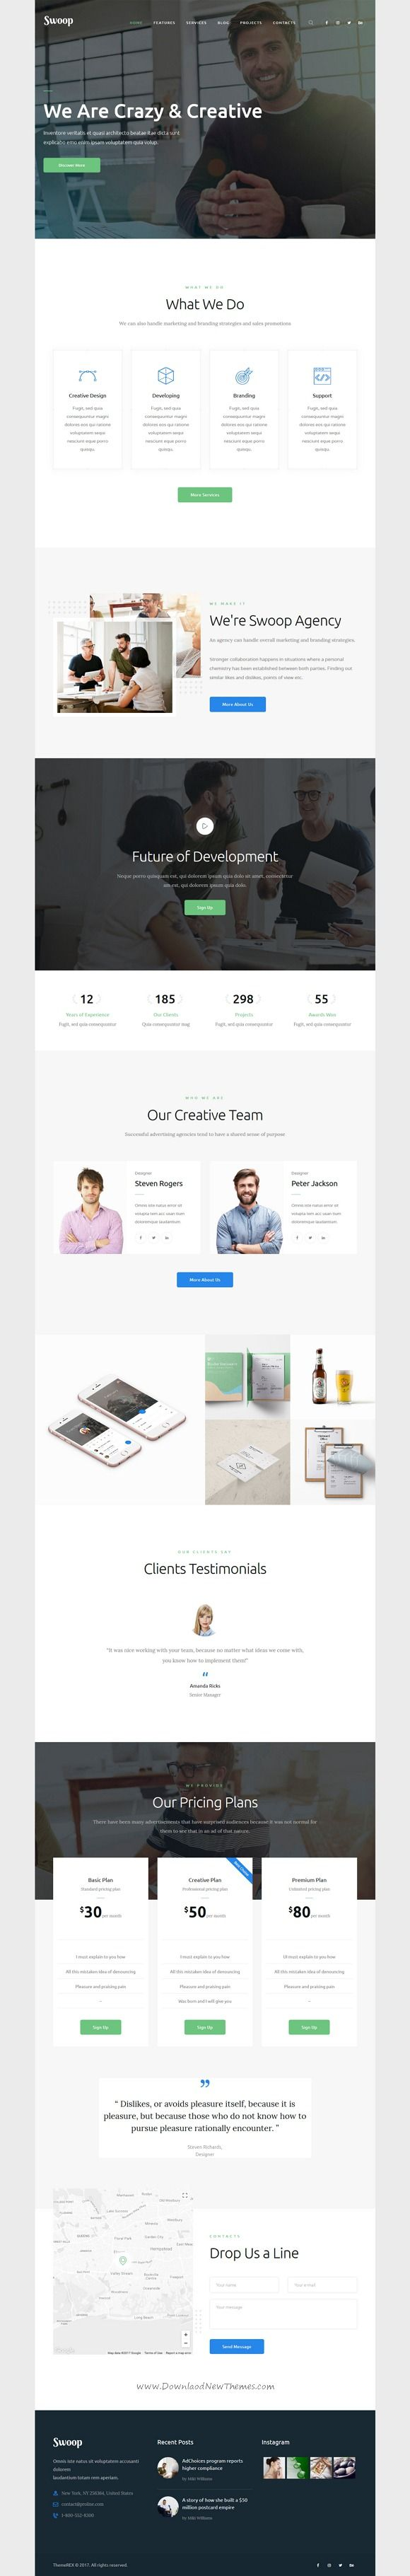 Swoop is clean and modern design 3in1 responsive #WordPress theme for #webstudio and creative #business website download now..